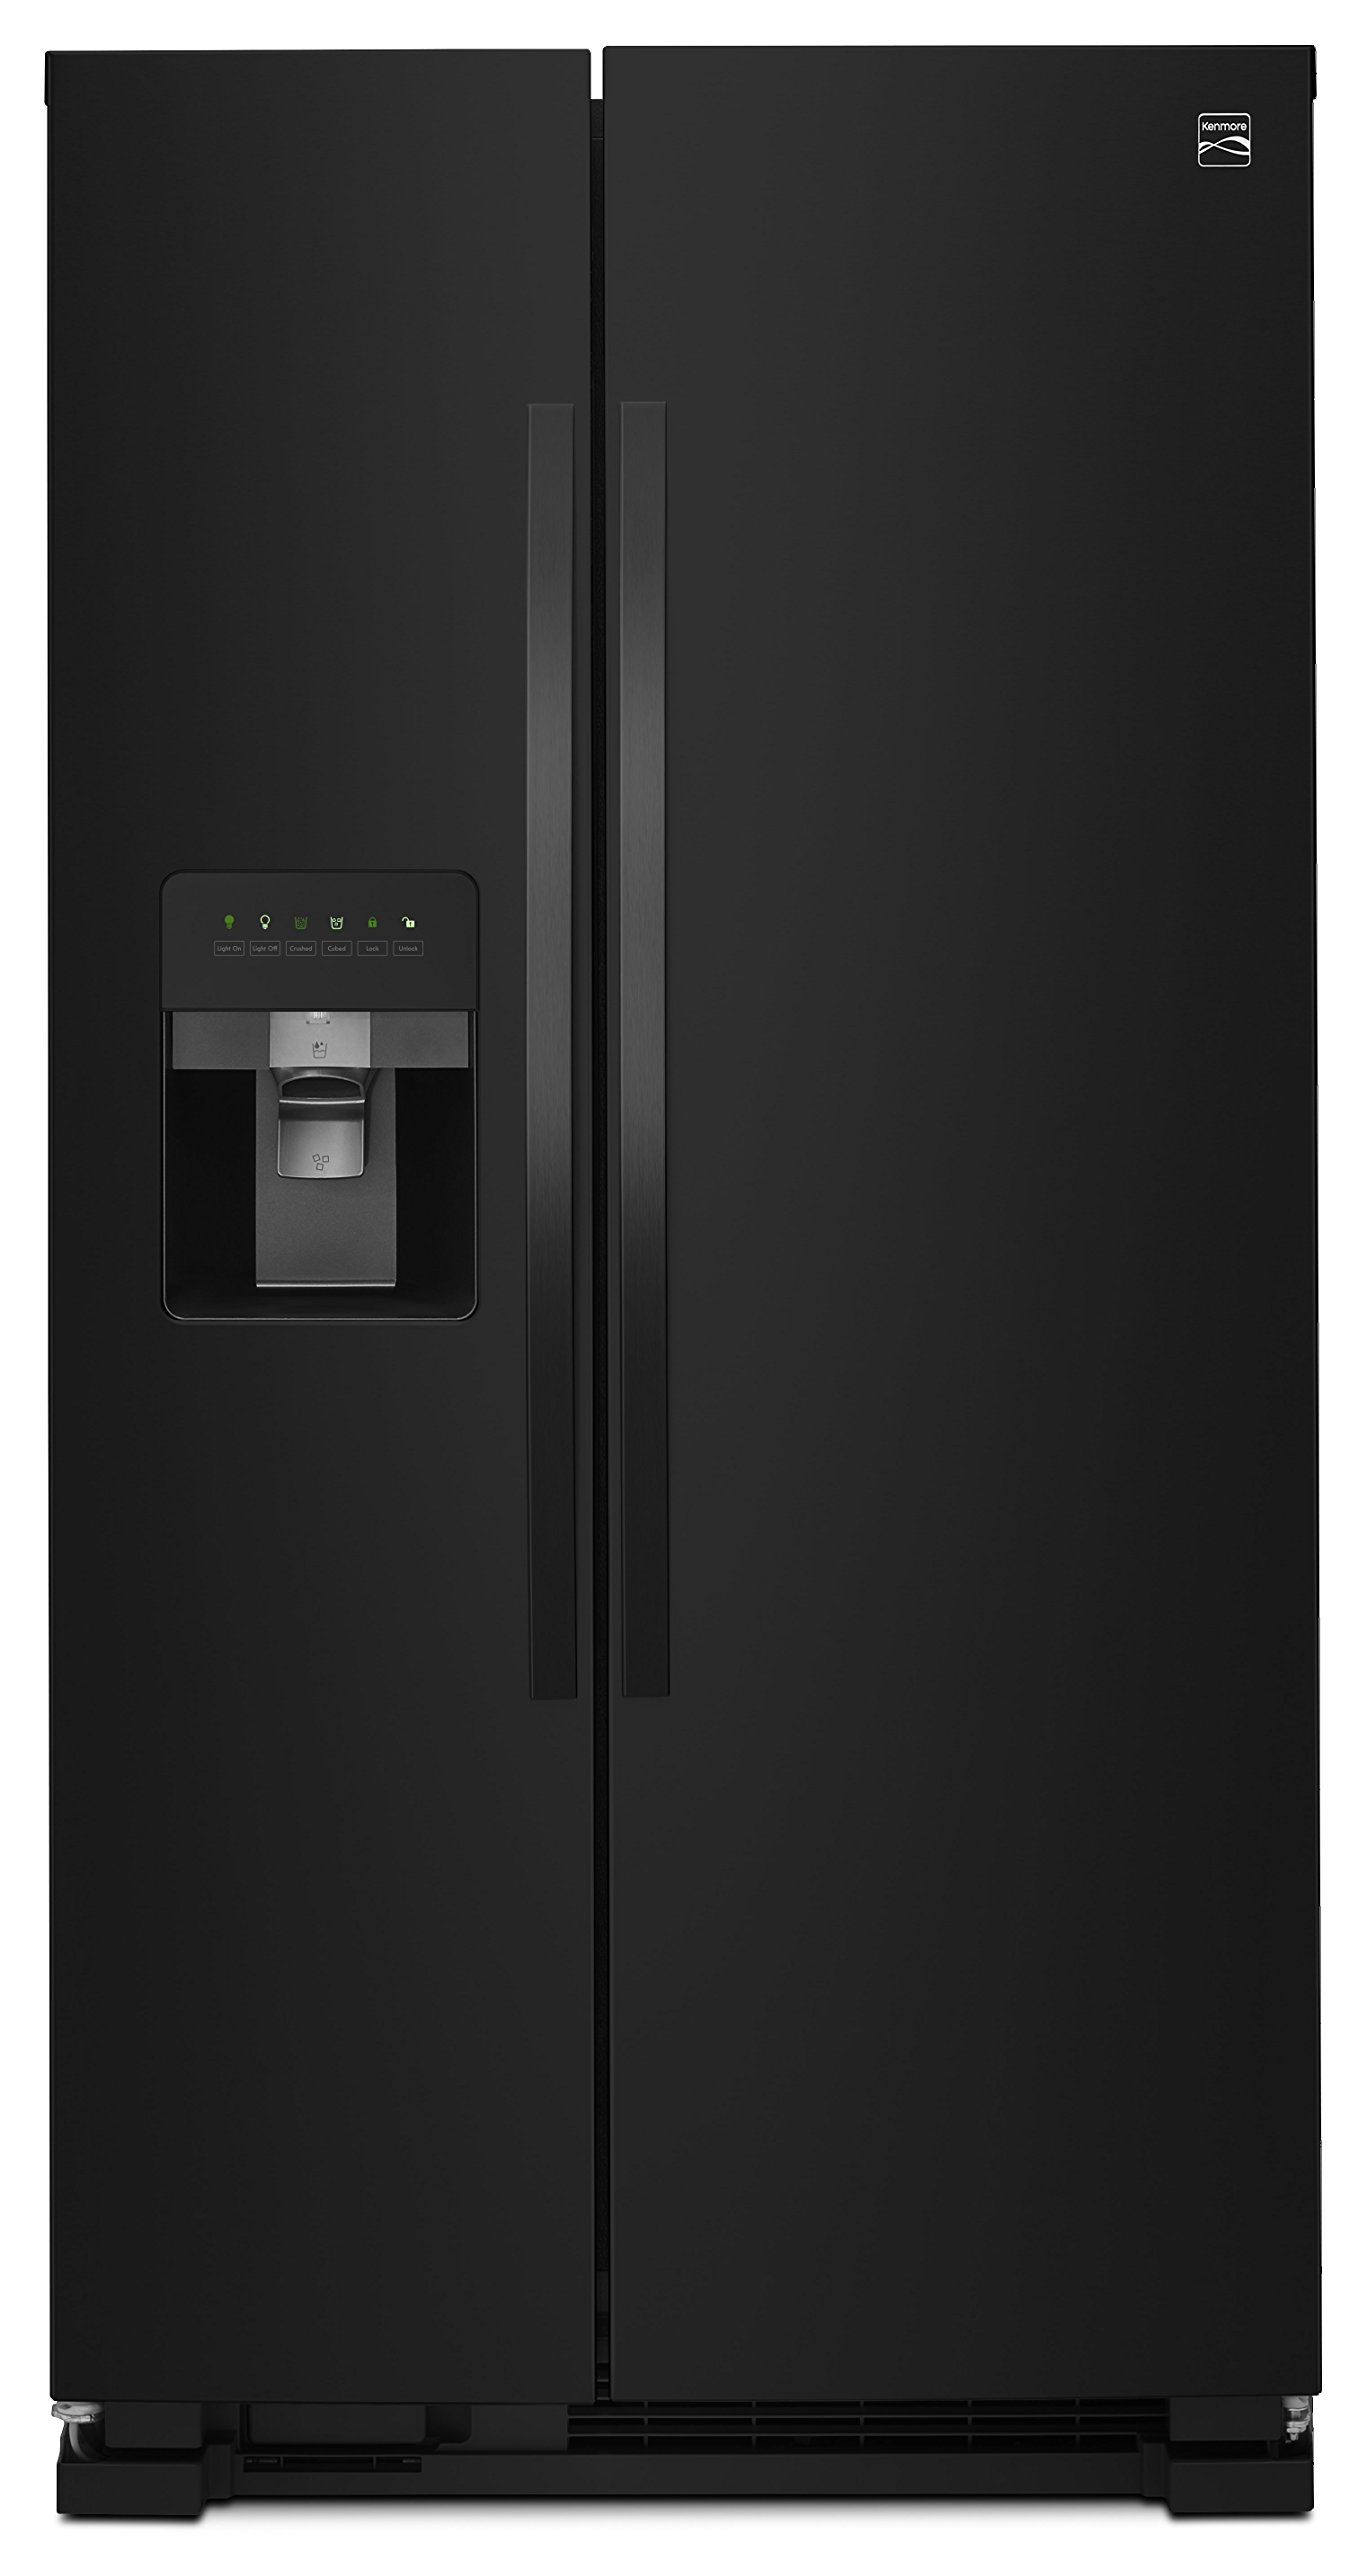 Kenmore 50049 25 Cu. Ft. Side-by-Side Refrigerator with Ice Maker with Window in Black, includes delivery and hookup (Available in select cities only) by Kenmore